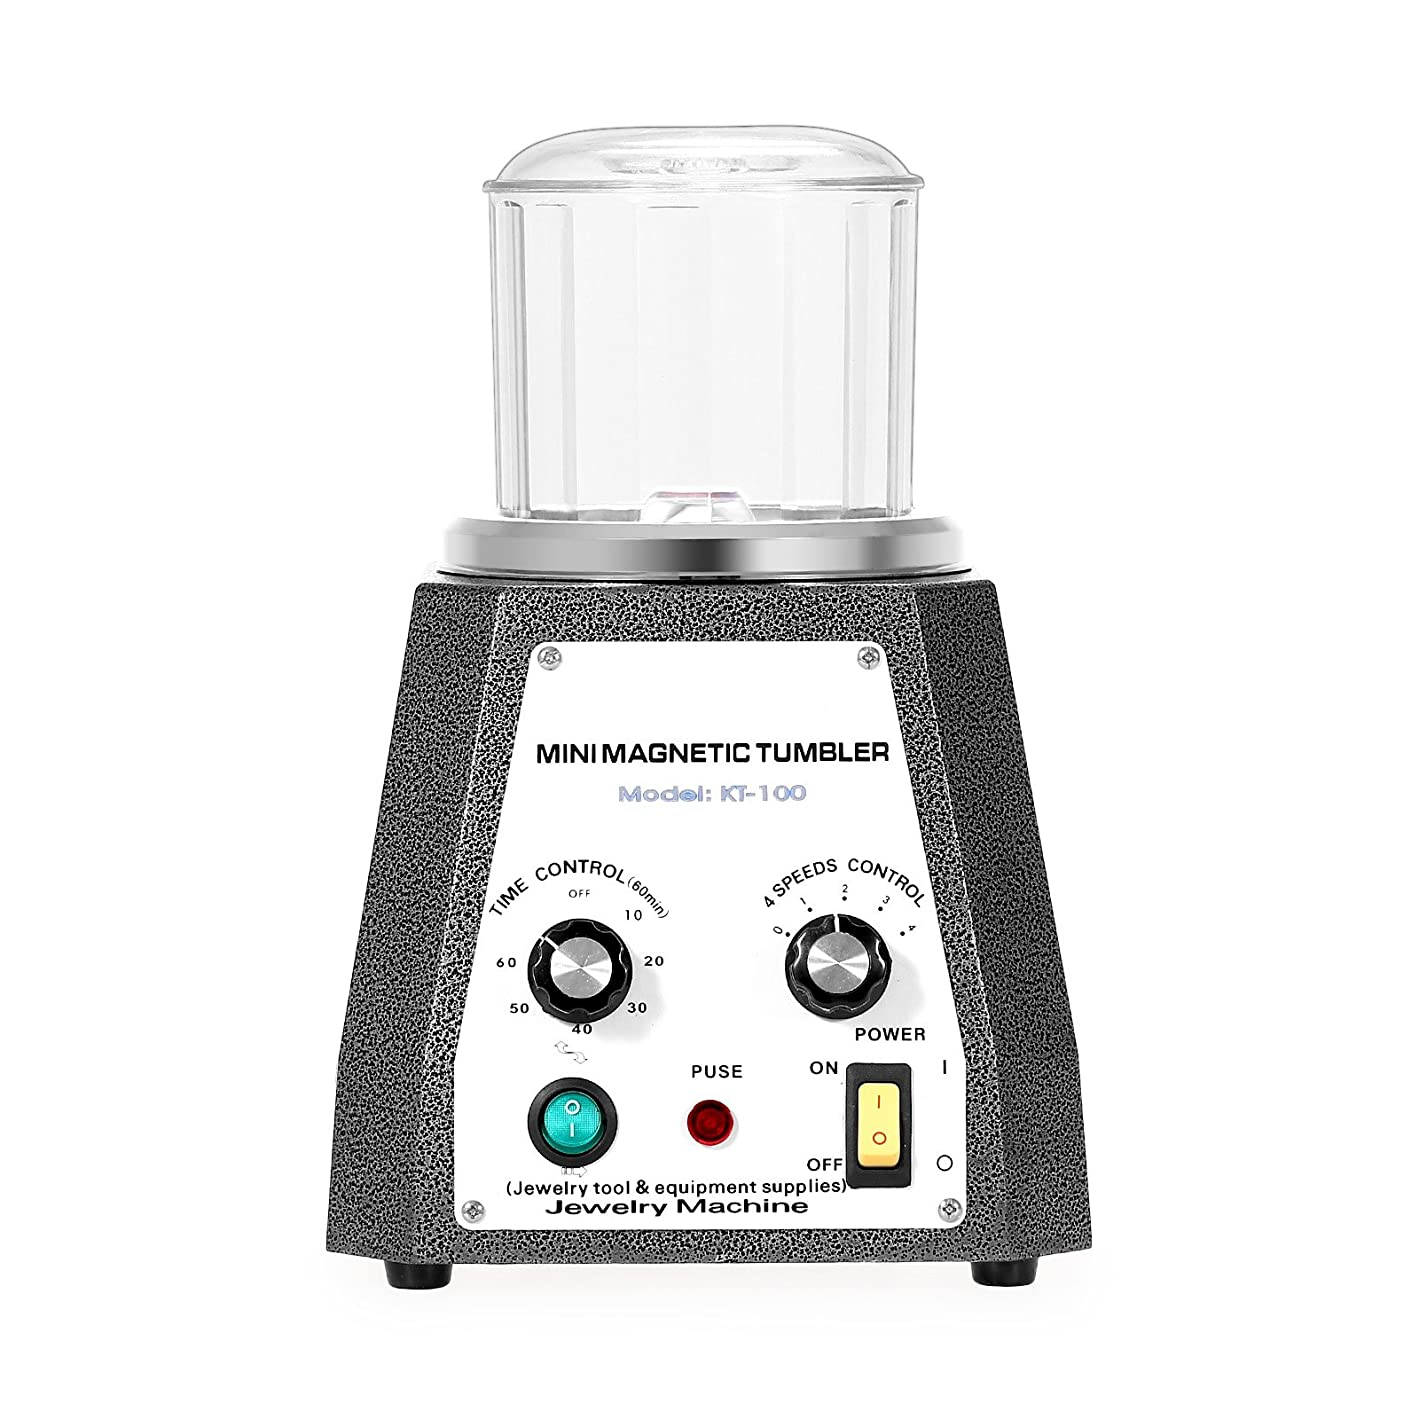 Mophorn Magnetic Tumbler Jewelry Polisher 110V Magnetic Grinding and Polishing Machine 4 Speeds Control Jewelry Polisher Tumbler 3.93 inch for Platinum Gold Silver Stainless Steel (100 mm) v87396356785810